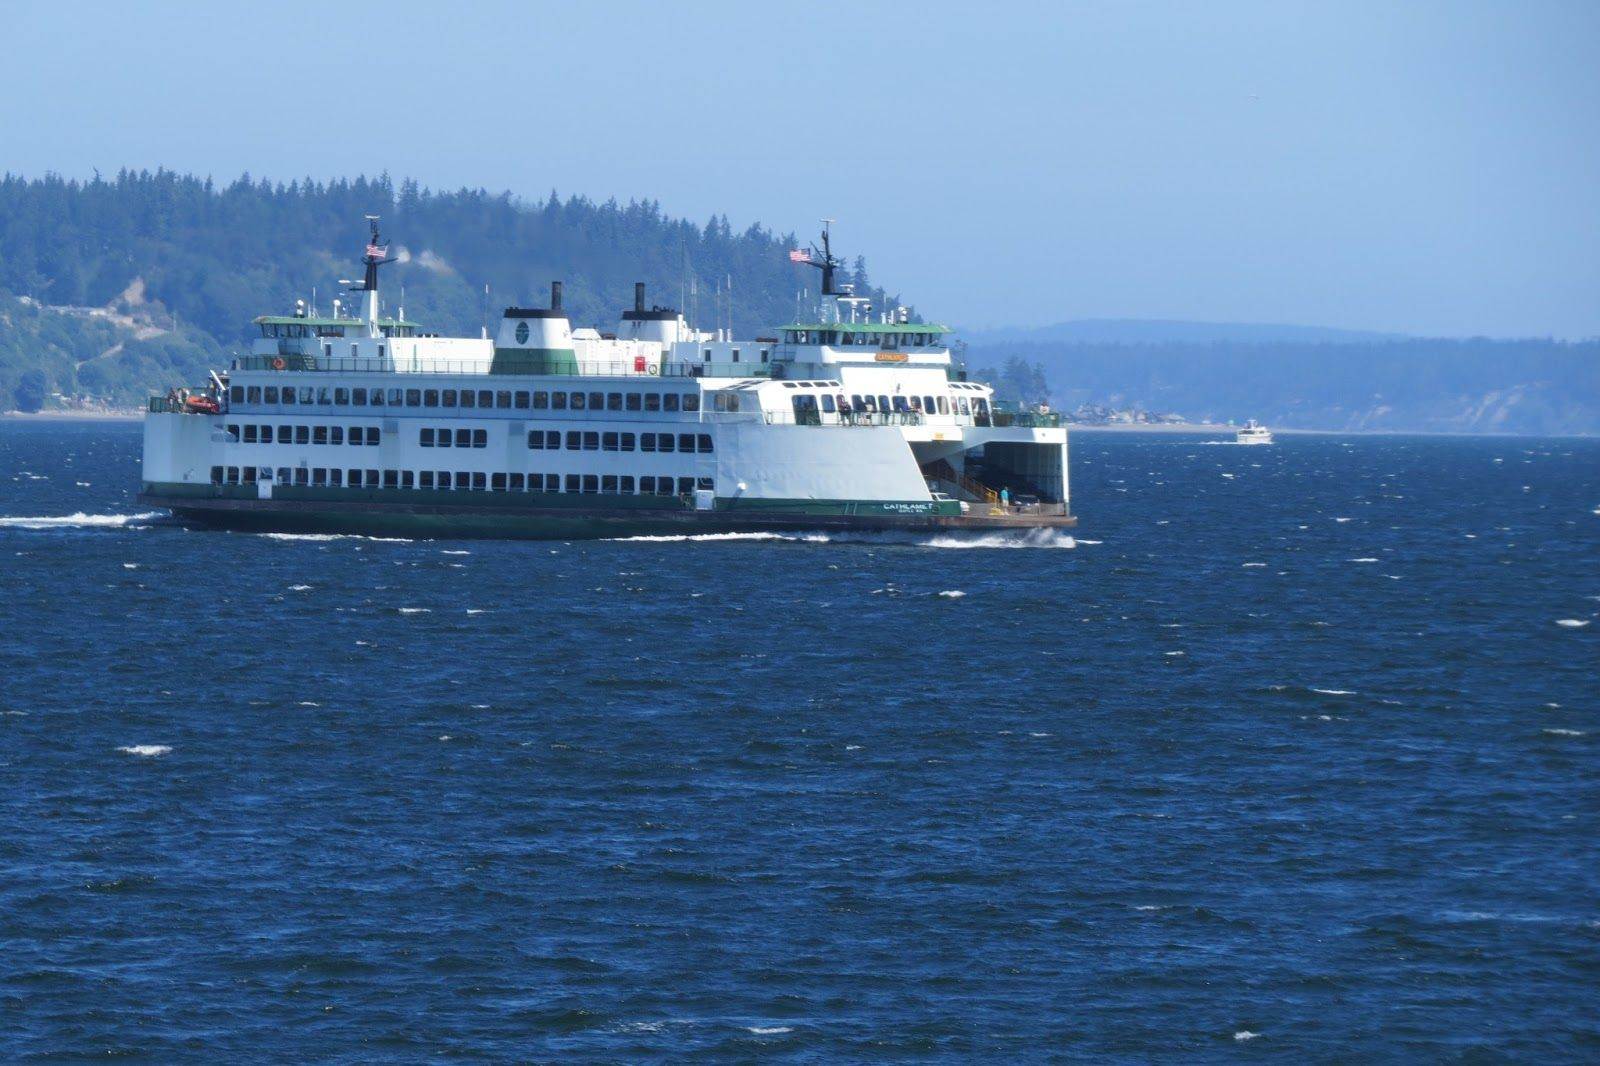 Whidbey Island Ferry Whidbey Island Pinterest